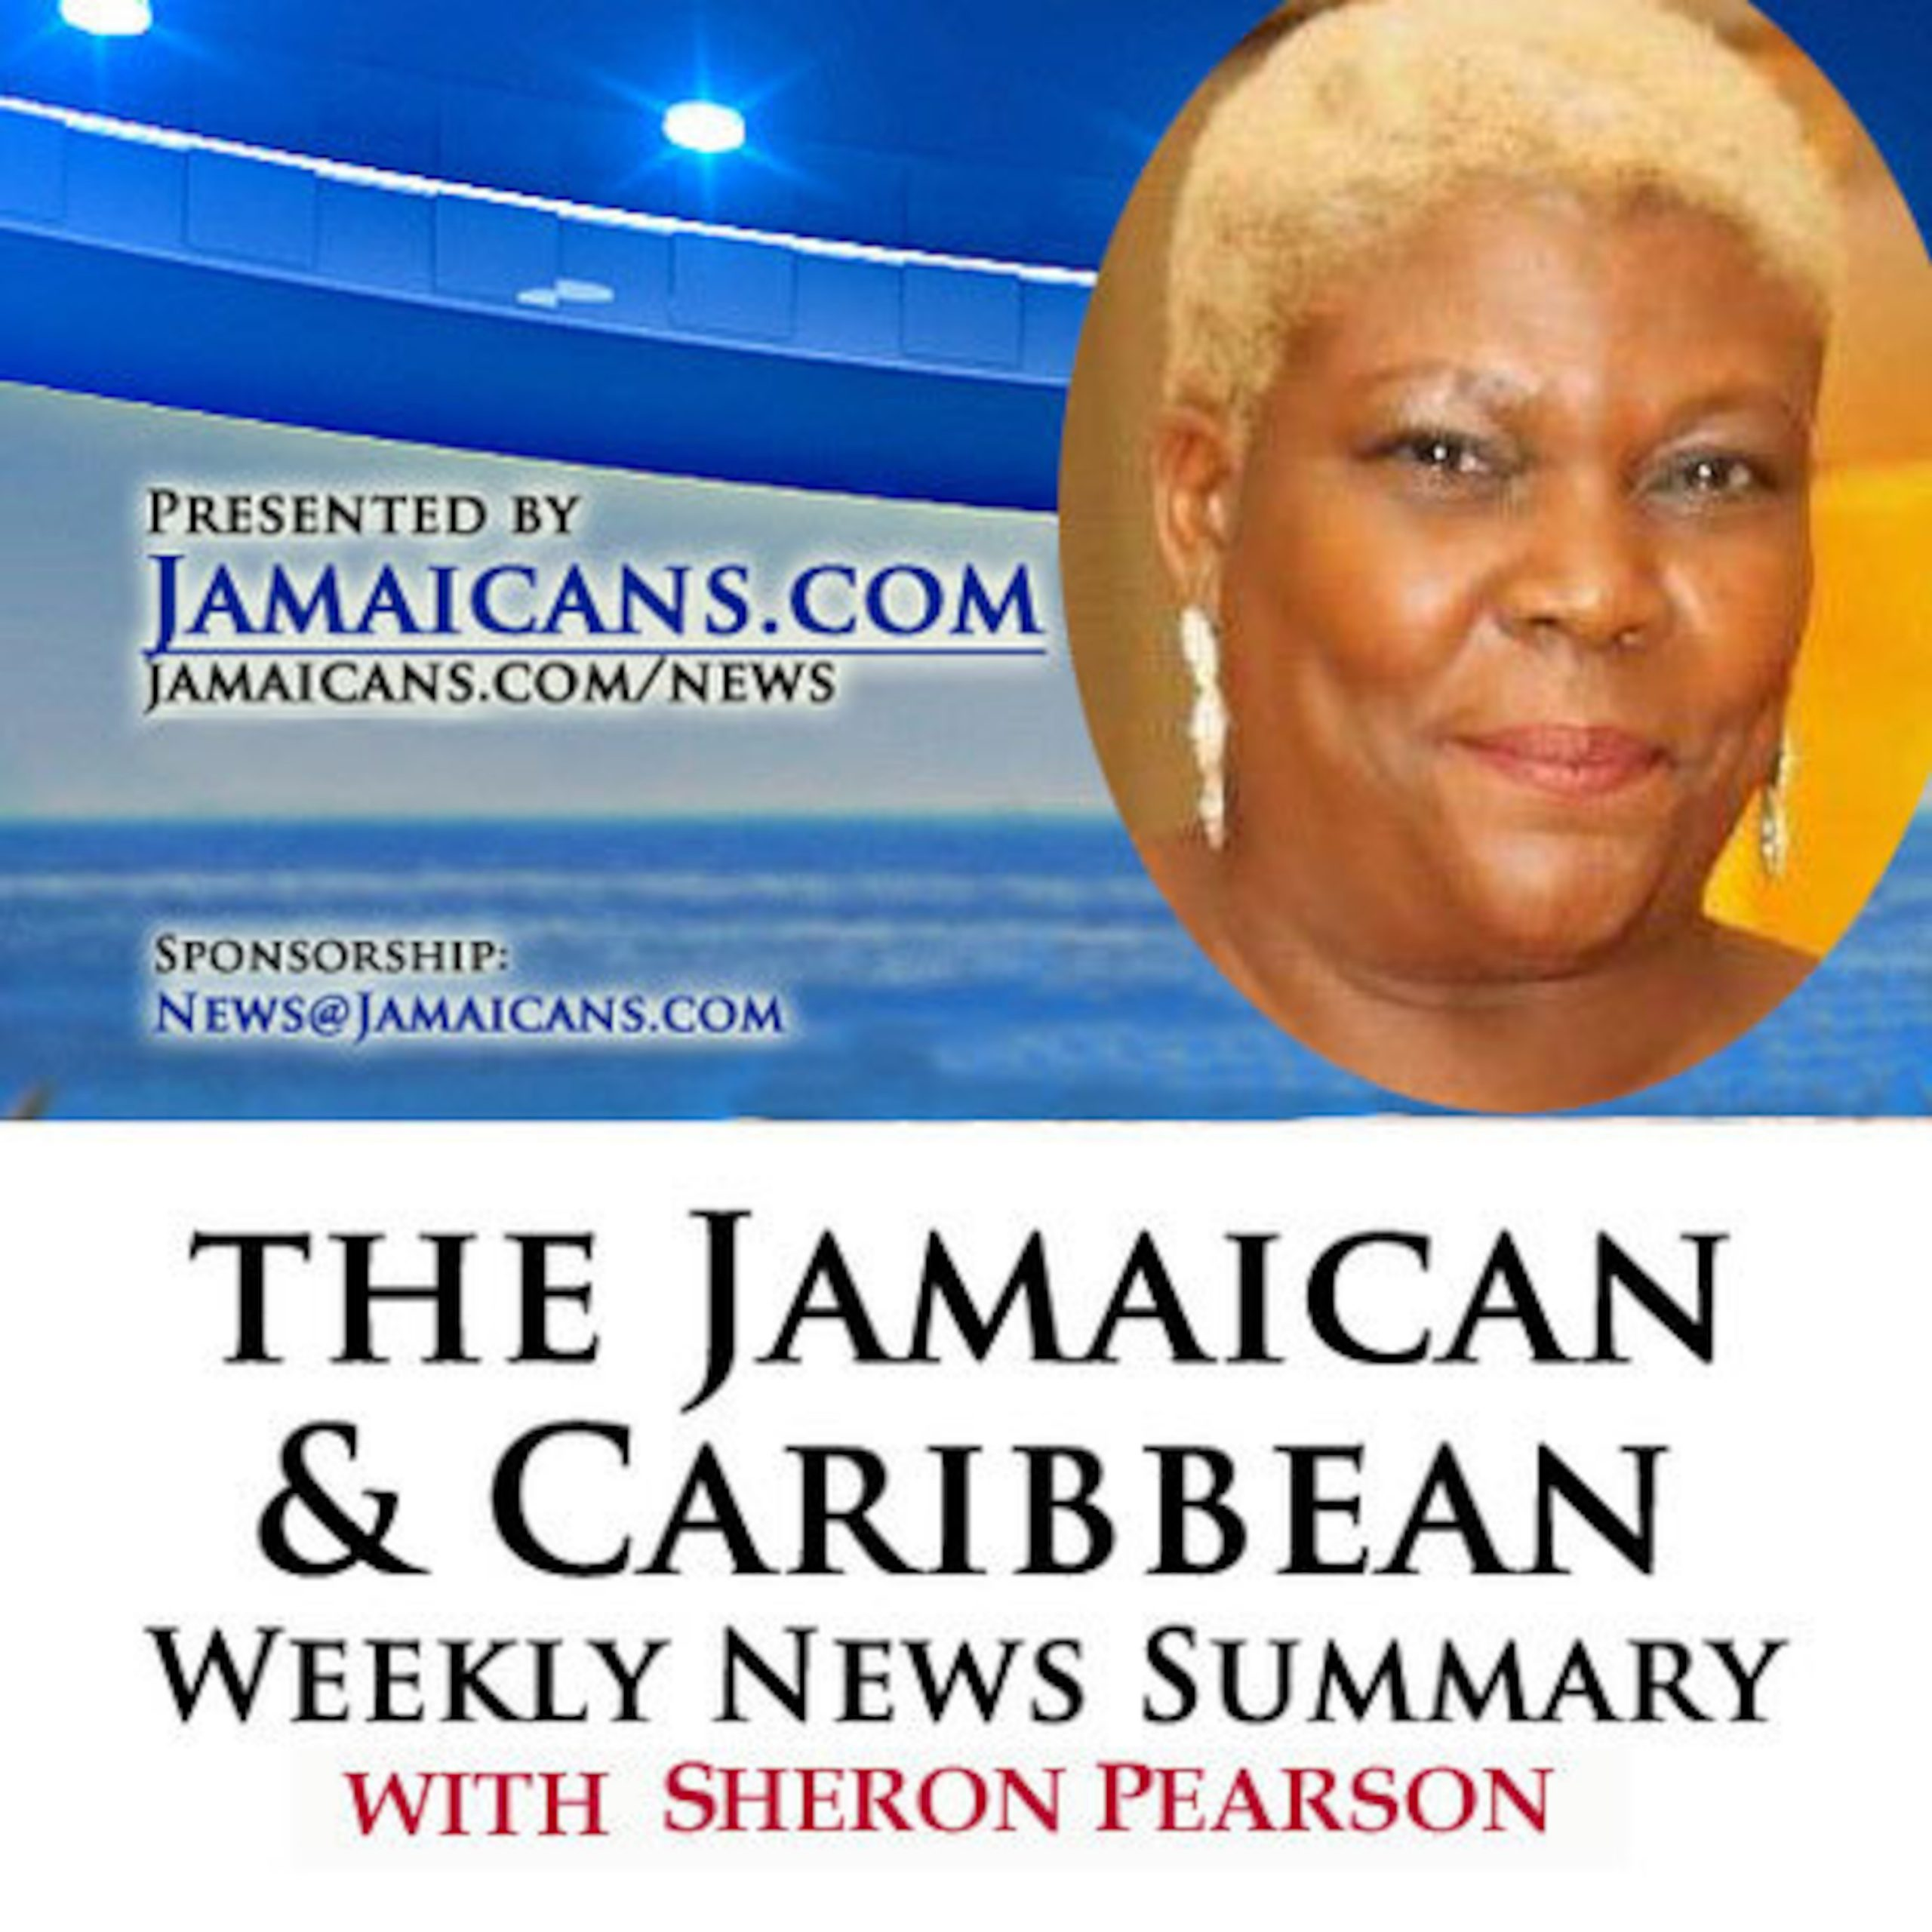 Listen to the Podcast of The Jamaica & Caribbean Weekly News Summary for the week ending May 22, 2020